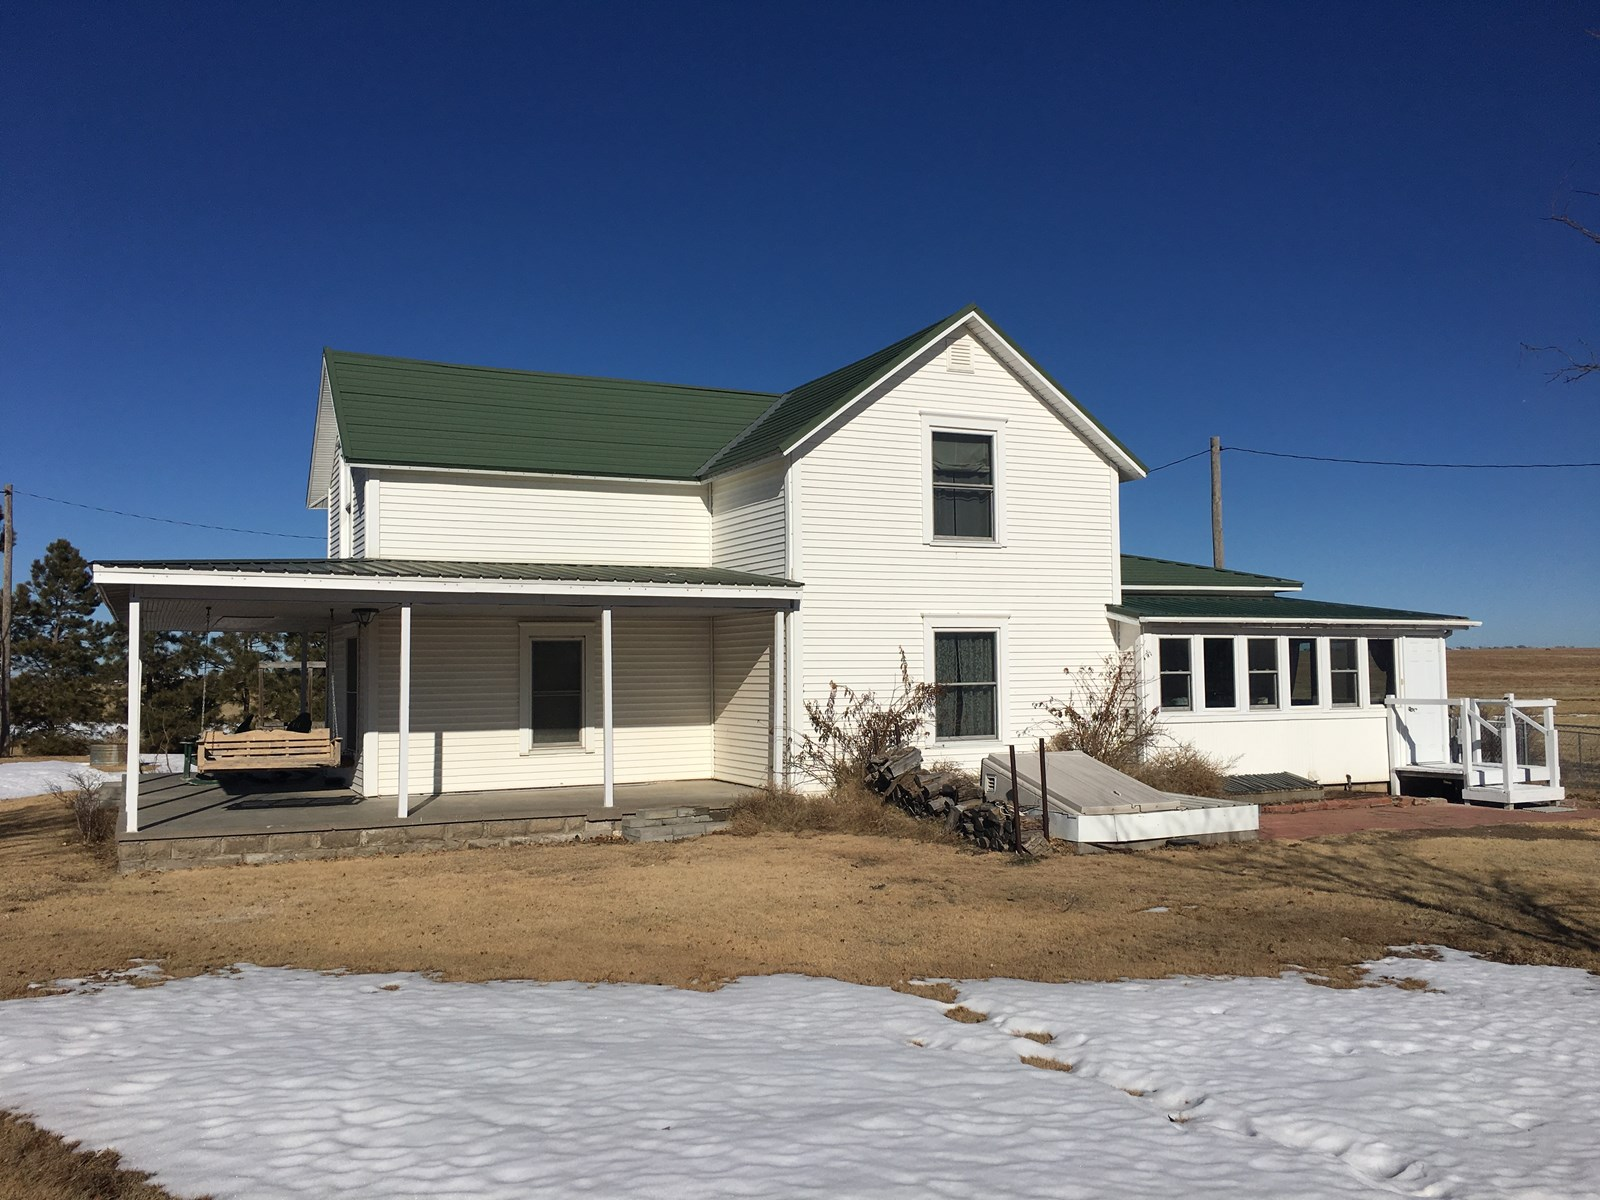 CHARMING, CLASSIC RANCH HOUSE ON 6.2 ACRES IN SW KS